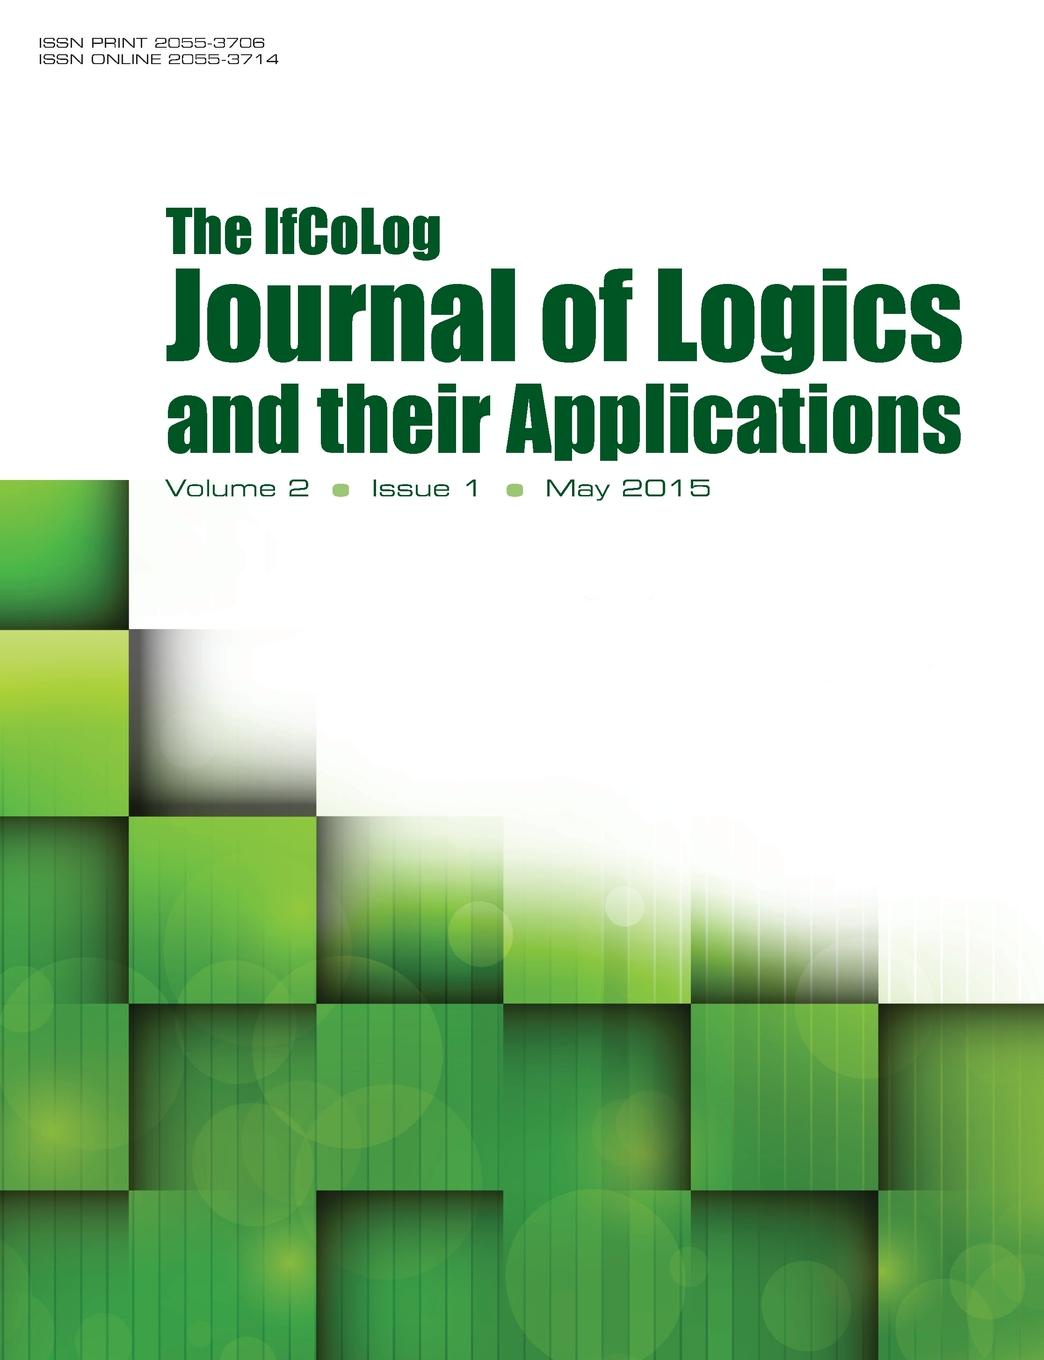 IfColog Journal of Logics and heir Applications. Volume 2, Number 1 american educational history journal volume 36 number 1 2 2009 pb